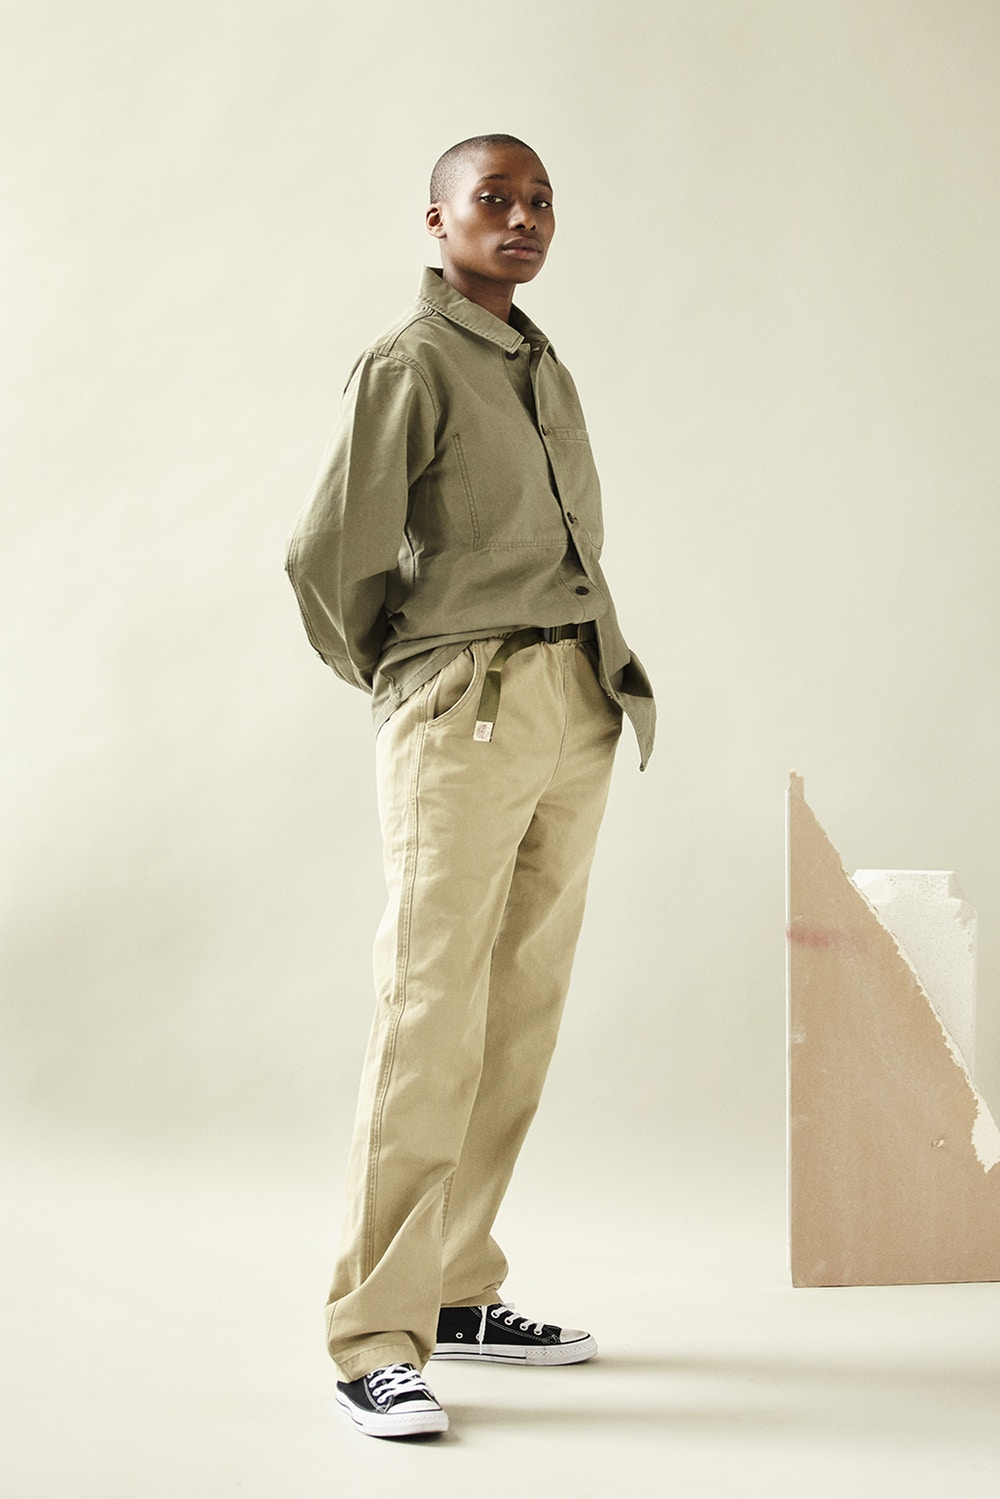 satta-spring-summer-2018-lookbook-5.jpg